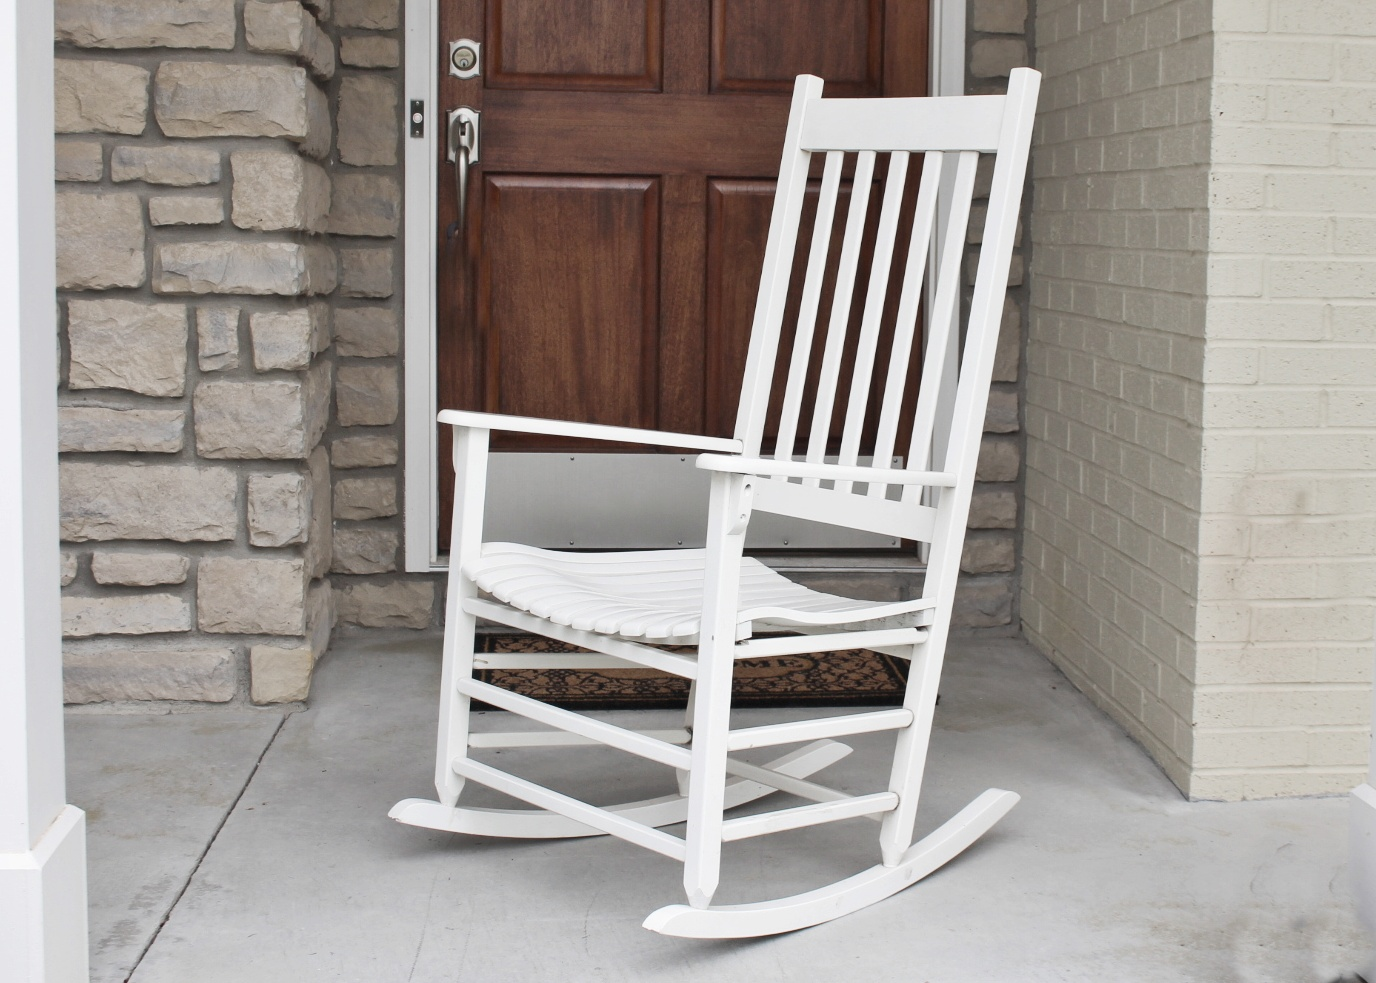 white wooden rocking chair. New River Casual Furniture White Wood Rocking Chair Wooden